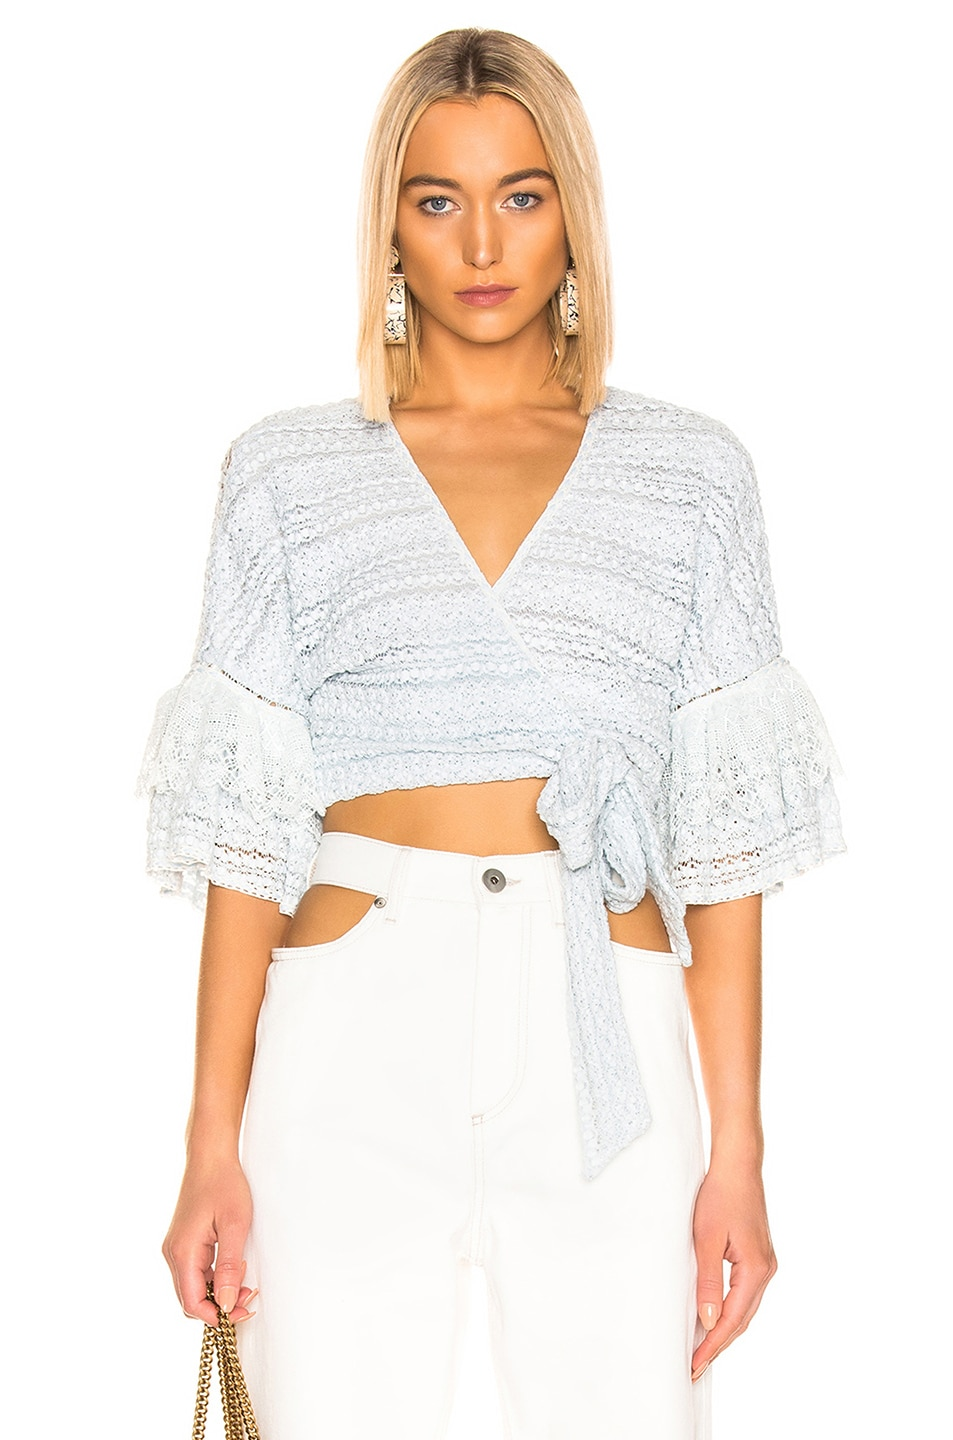 JONATHAN SIMKHAI Mixed Knit Lace Wrap Top Light Blue on sale